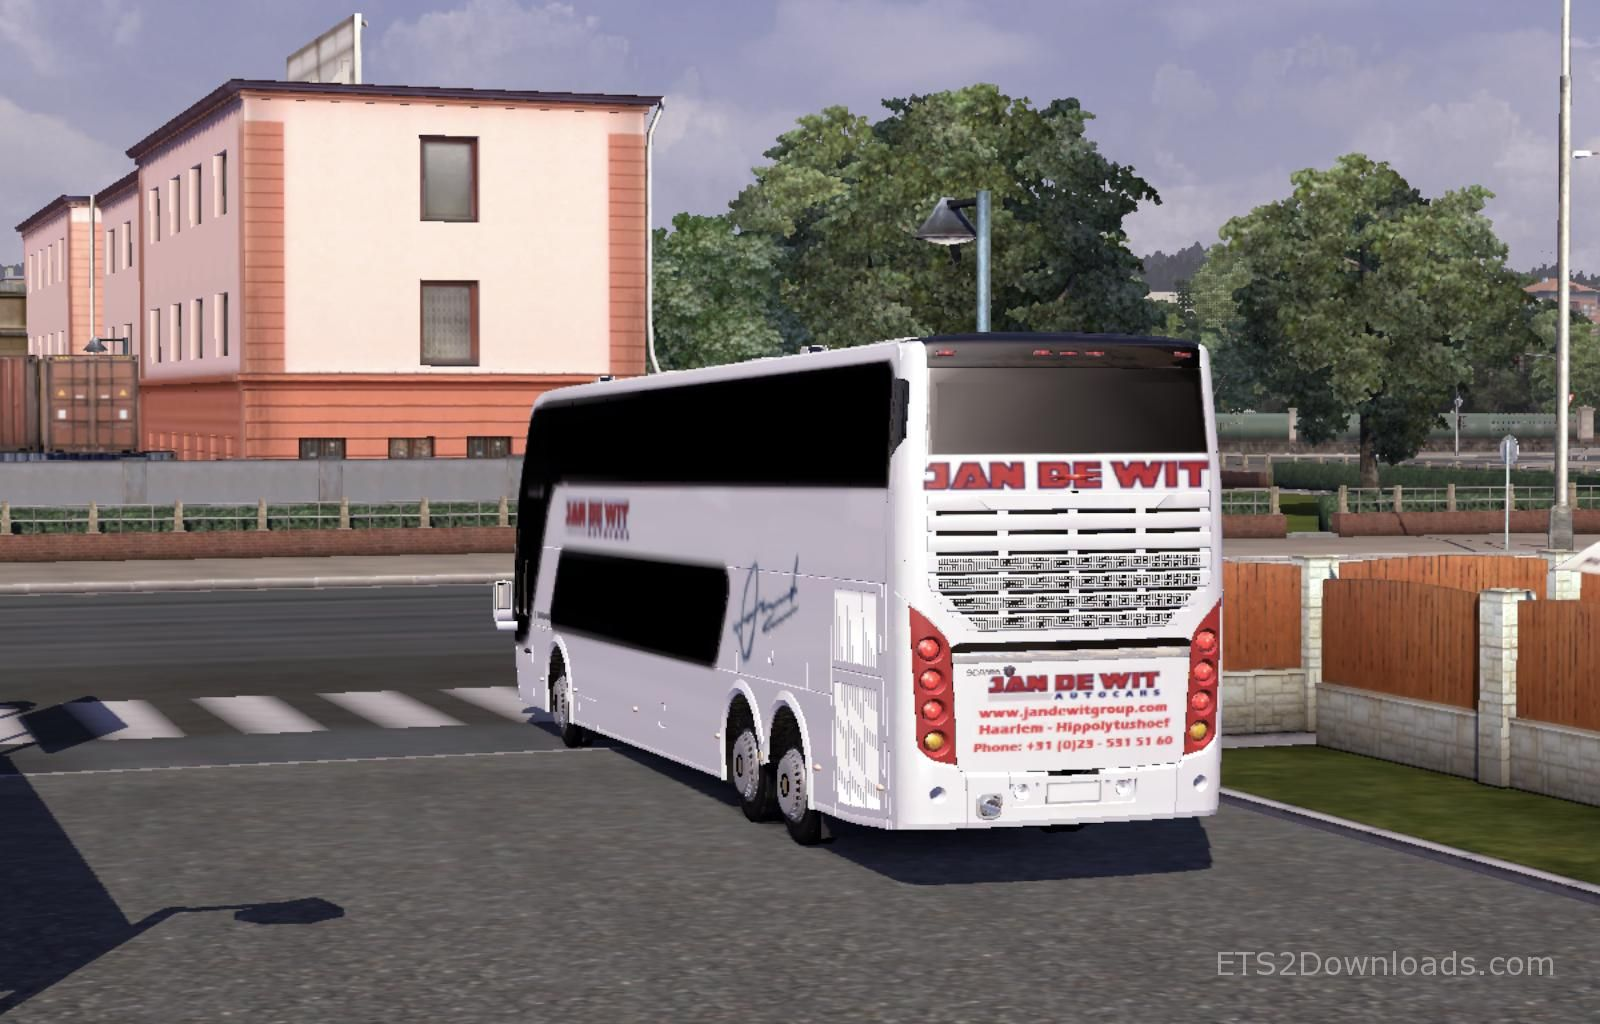 jan-de-wit-bus-2